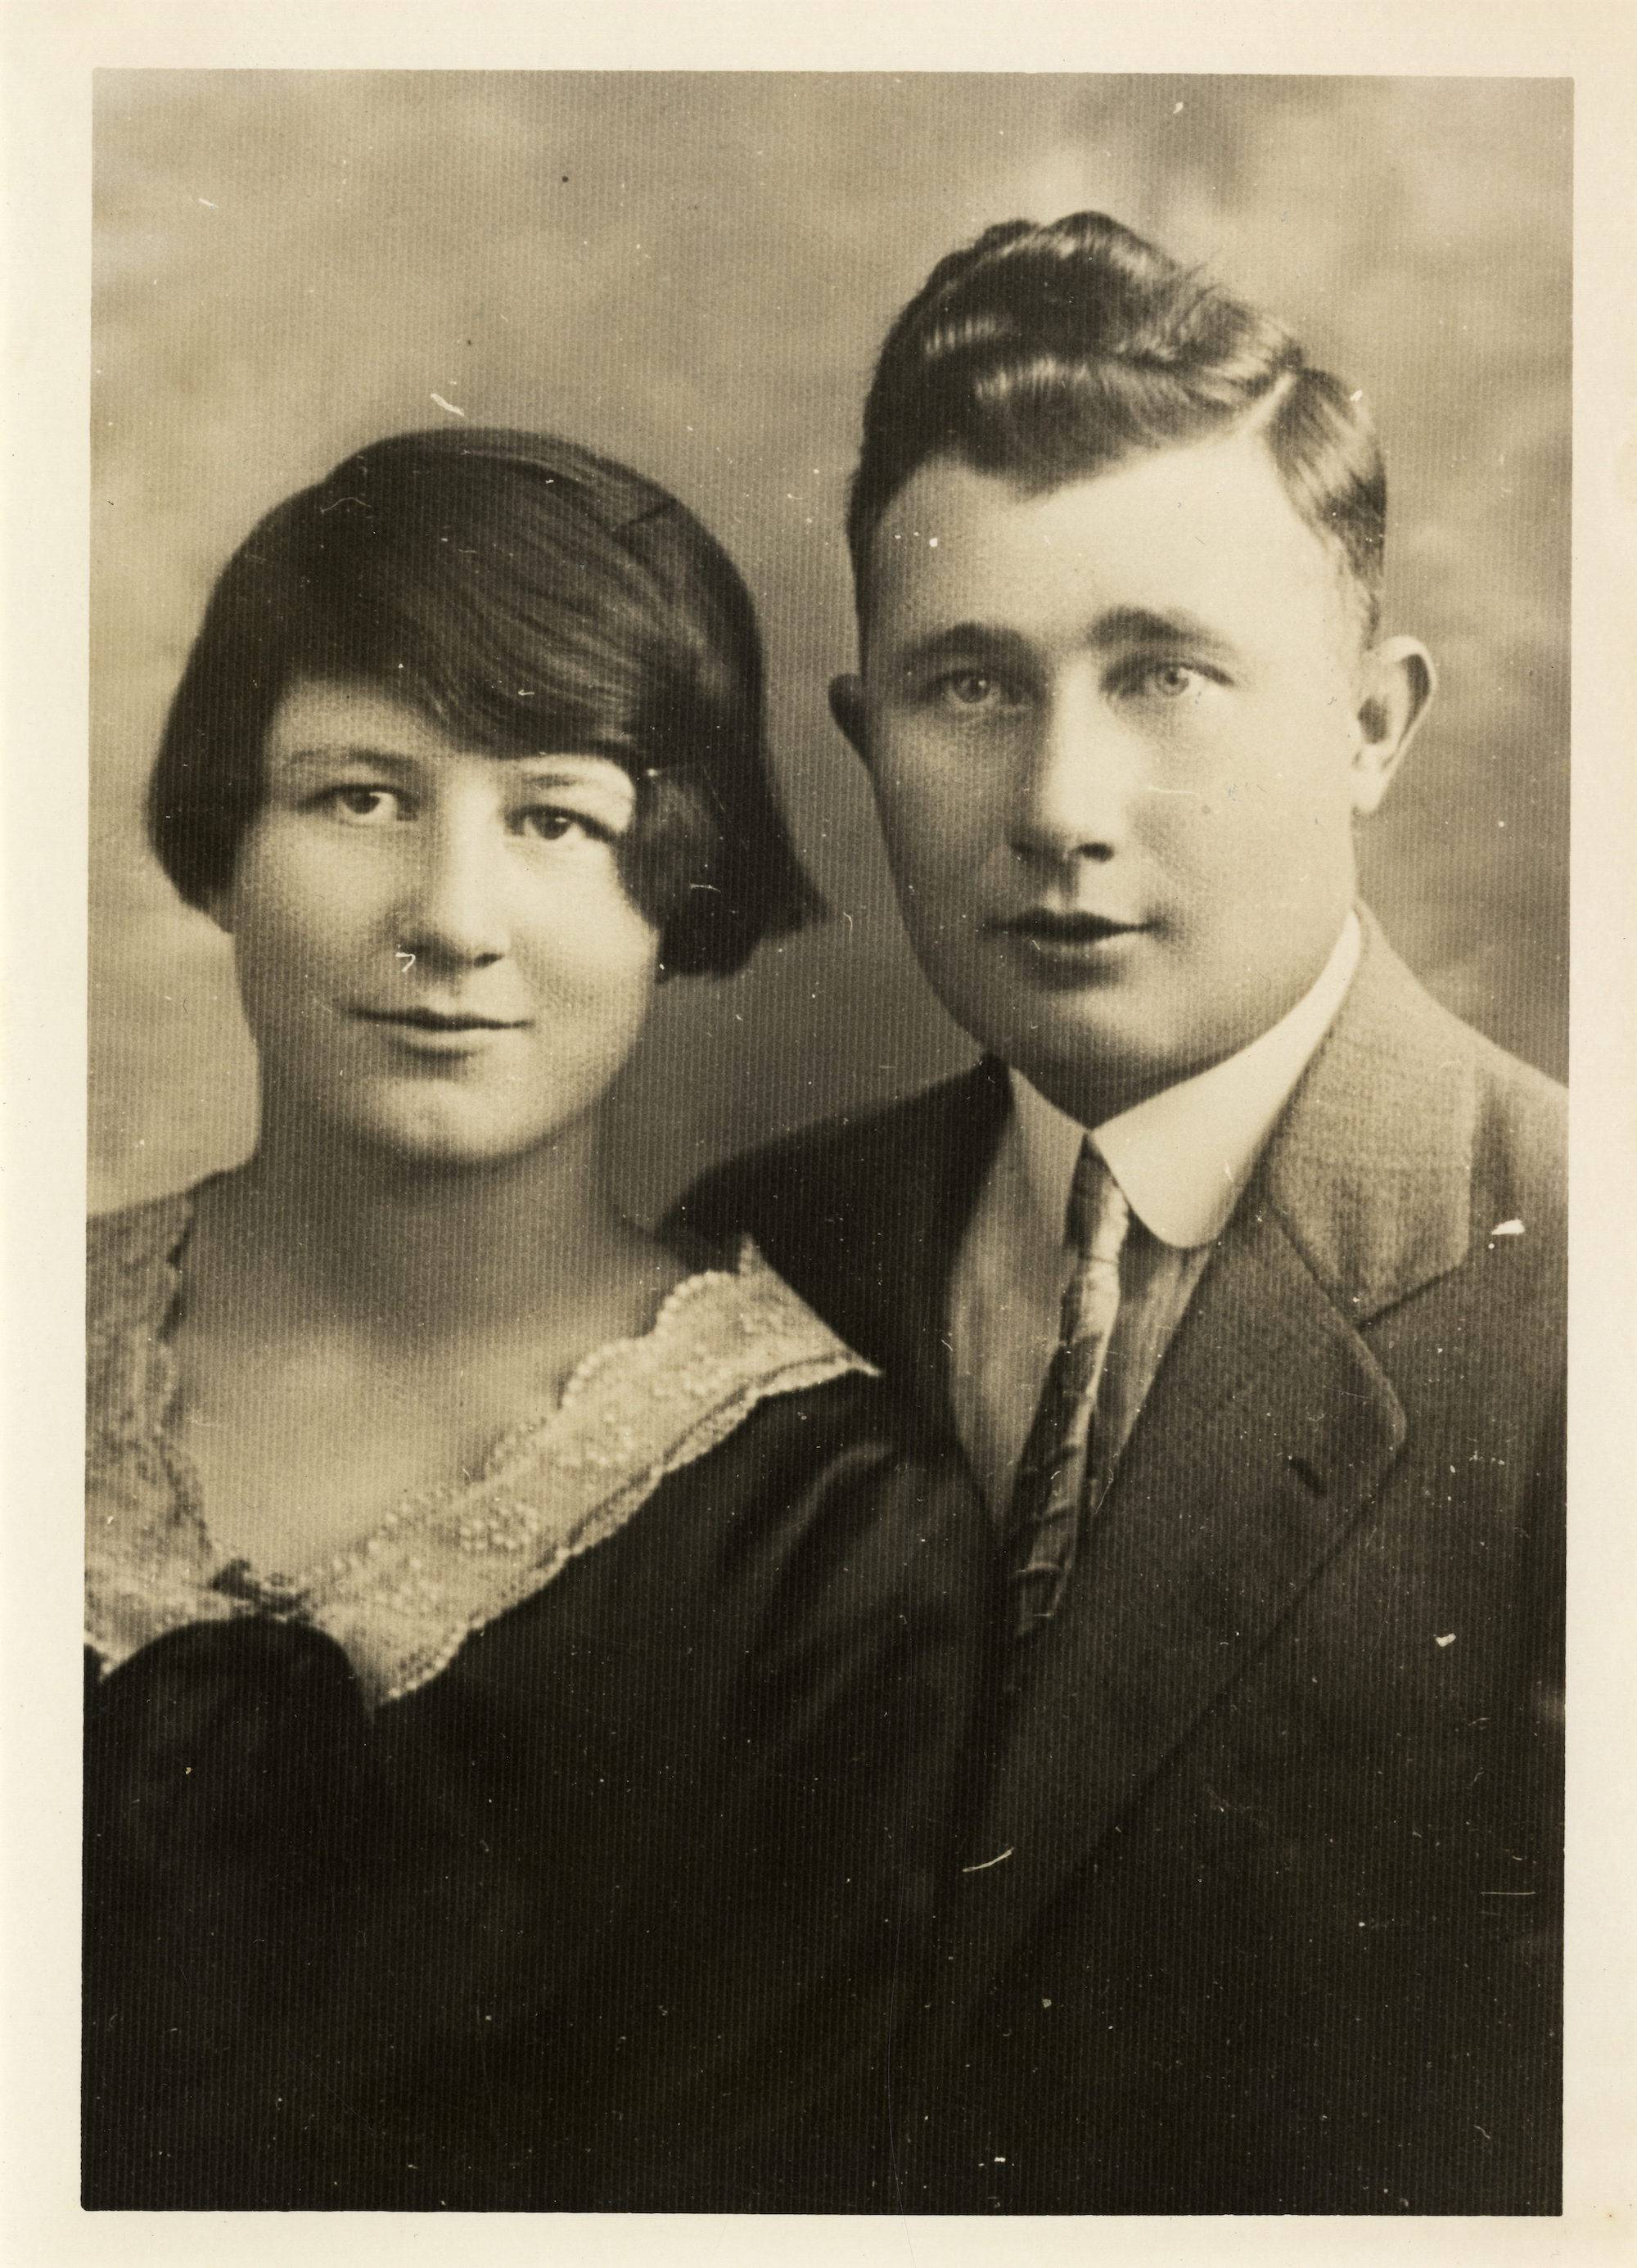 Nellie-Pheig Sayers and her brother Pats Guiheen. Taken in Springfield soon after Nellie's arrival in 1928.